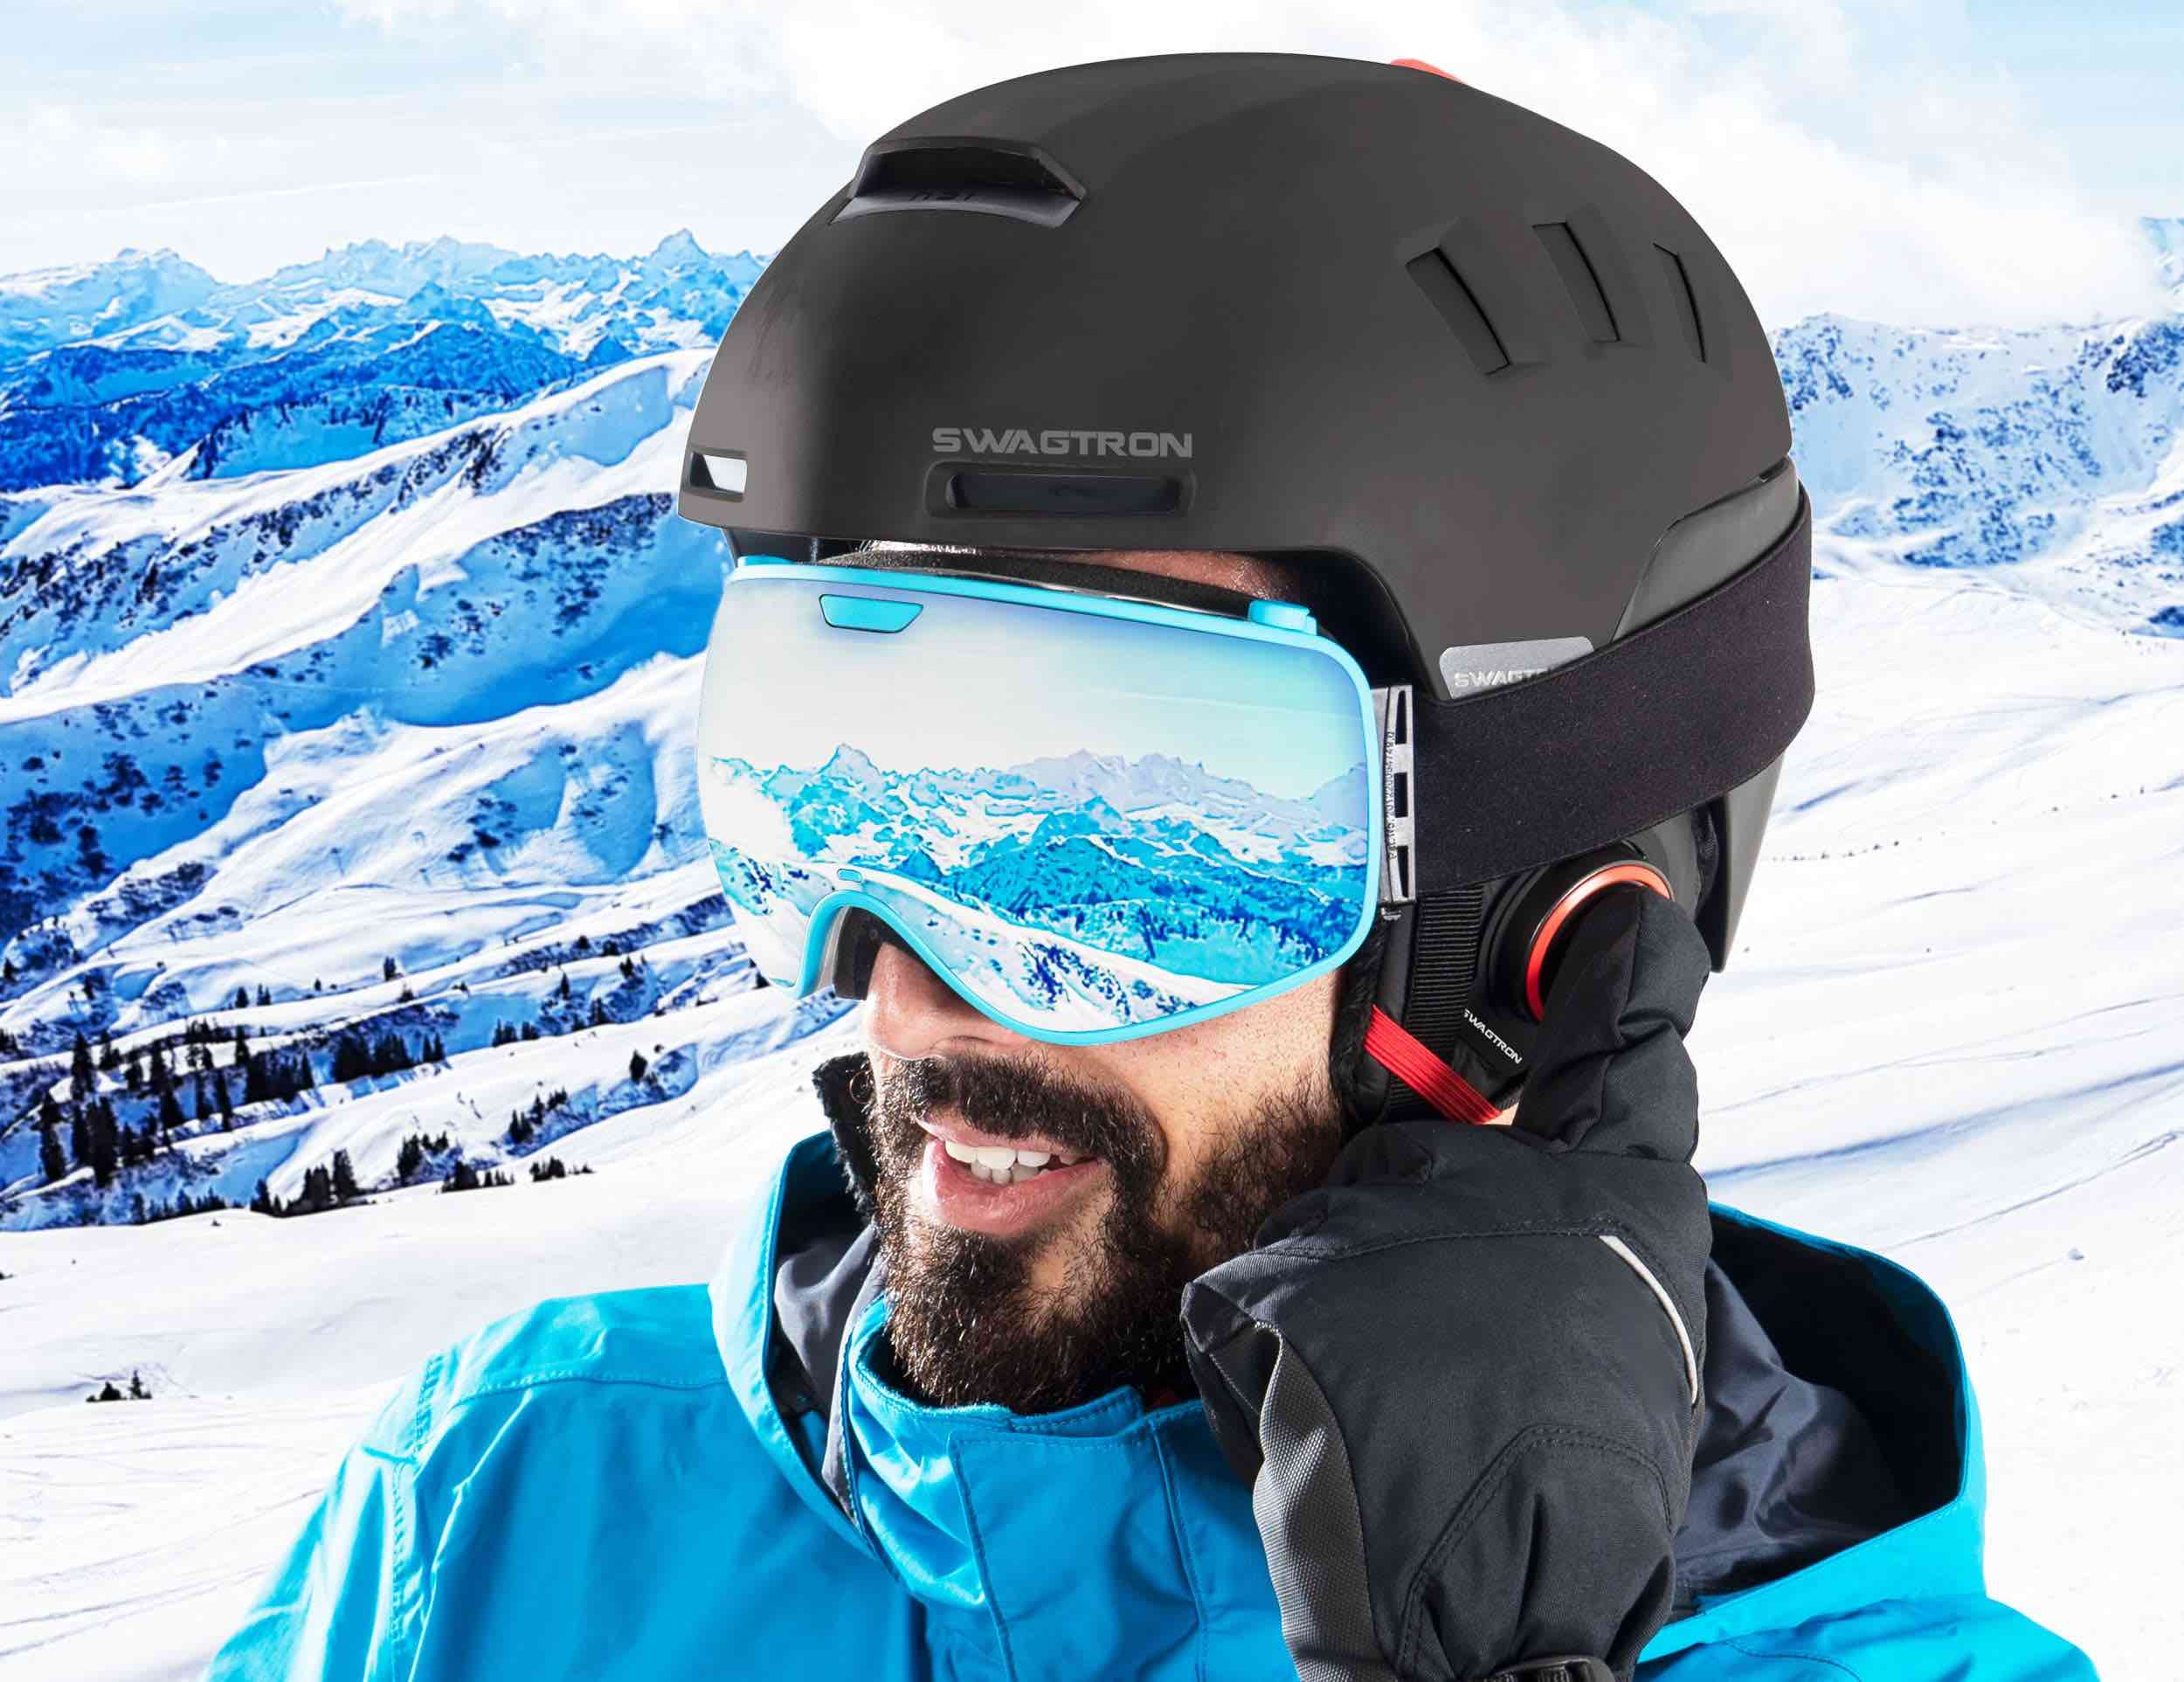 SWAGTRON Snowtide Smart Ski and Snowboard Helmet